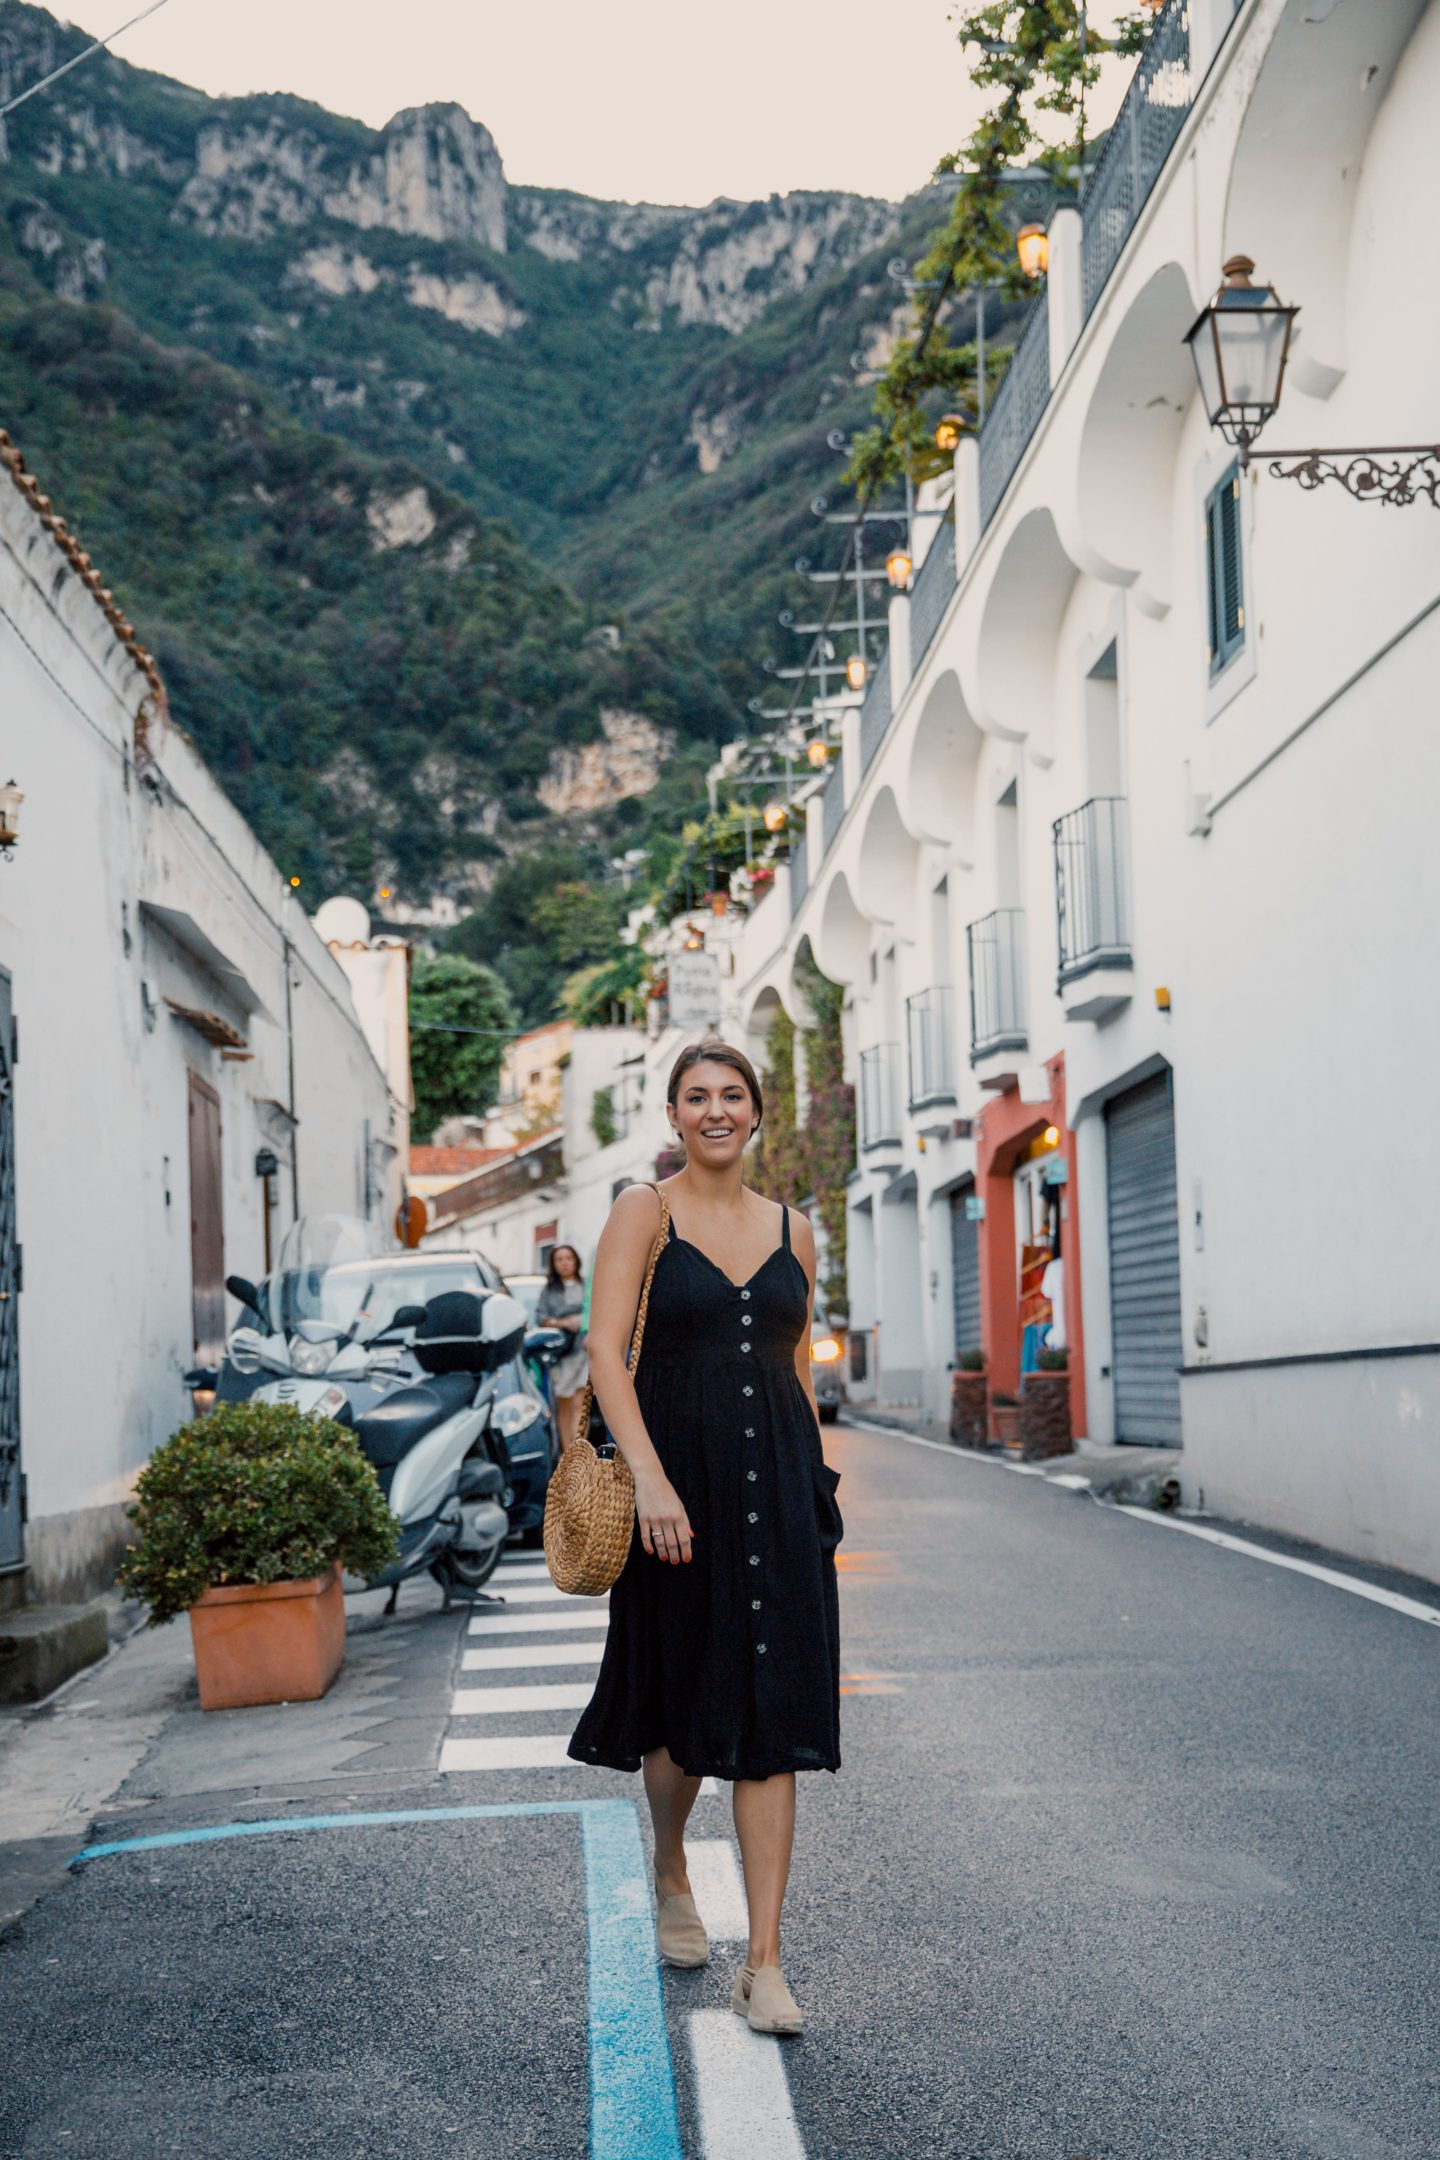 The Only Positano Travel Guide You Need | Top Positano Travel Tips: Getting Around